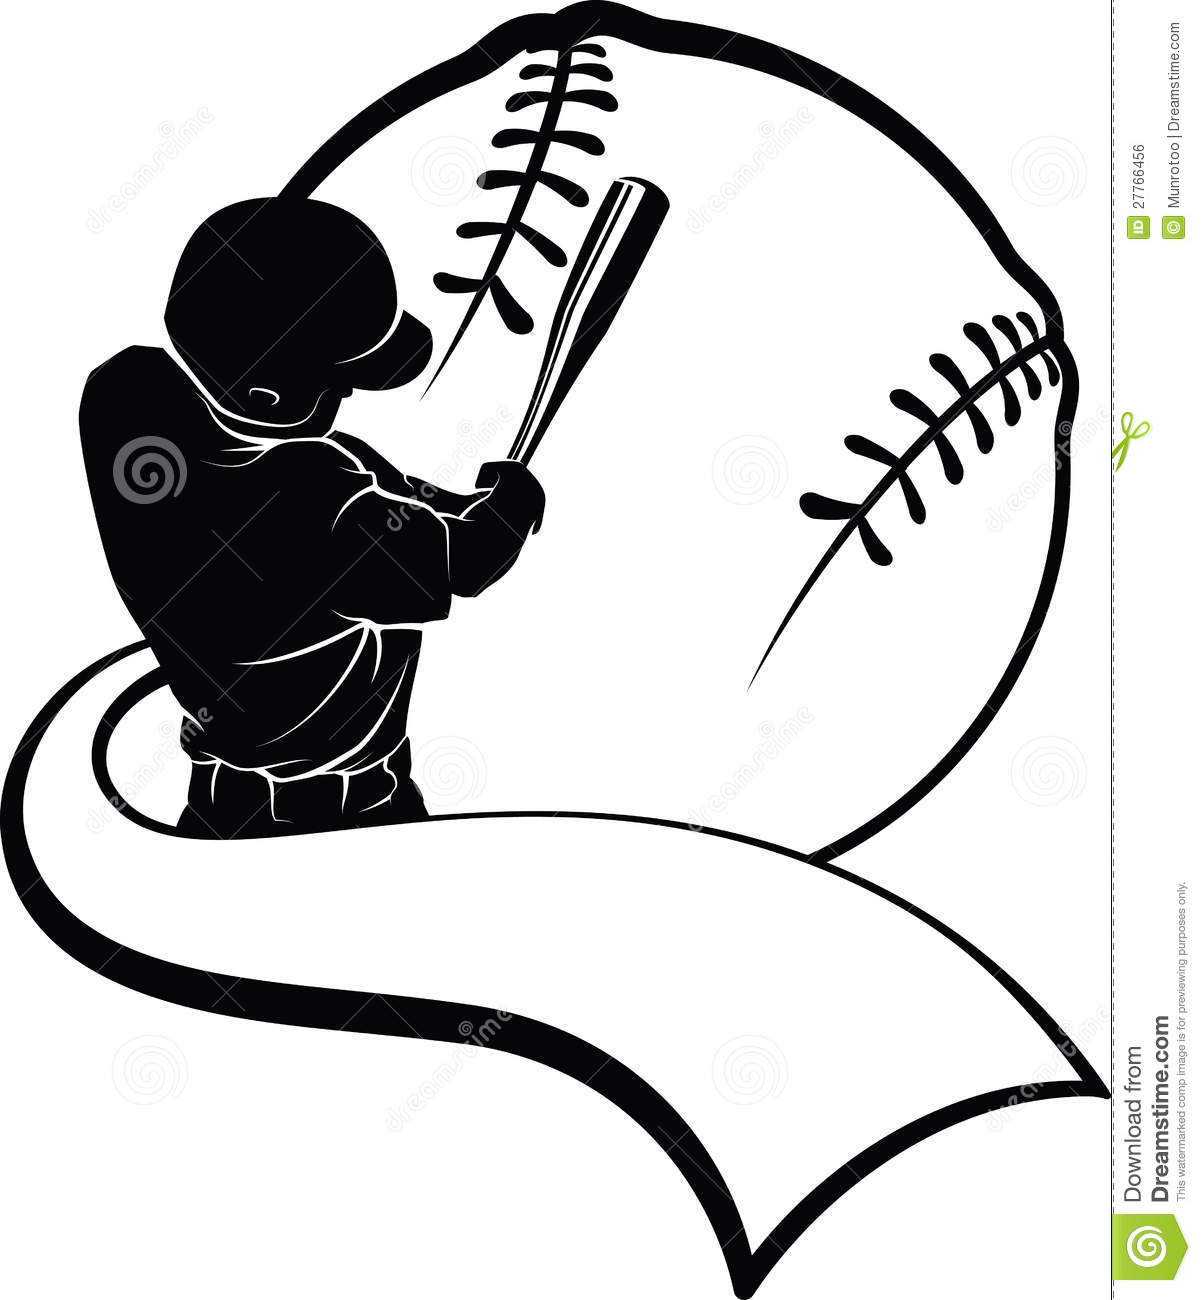 silhouetted baseball batter hitting in front of a stylized baseball ...